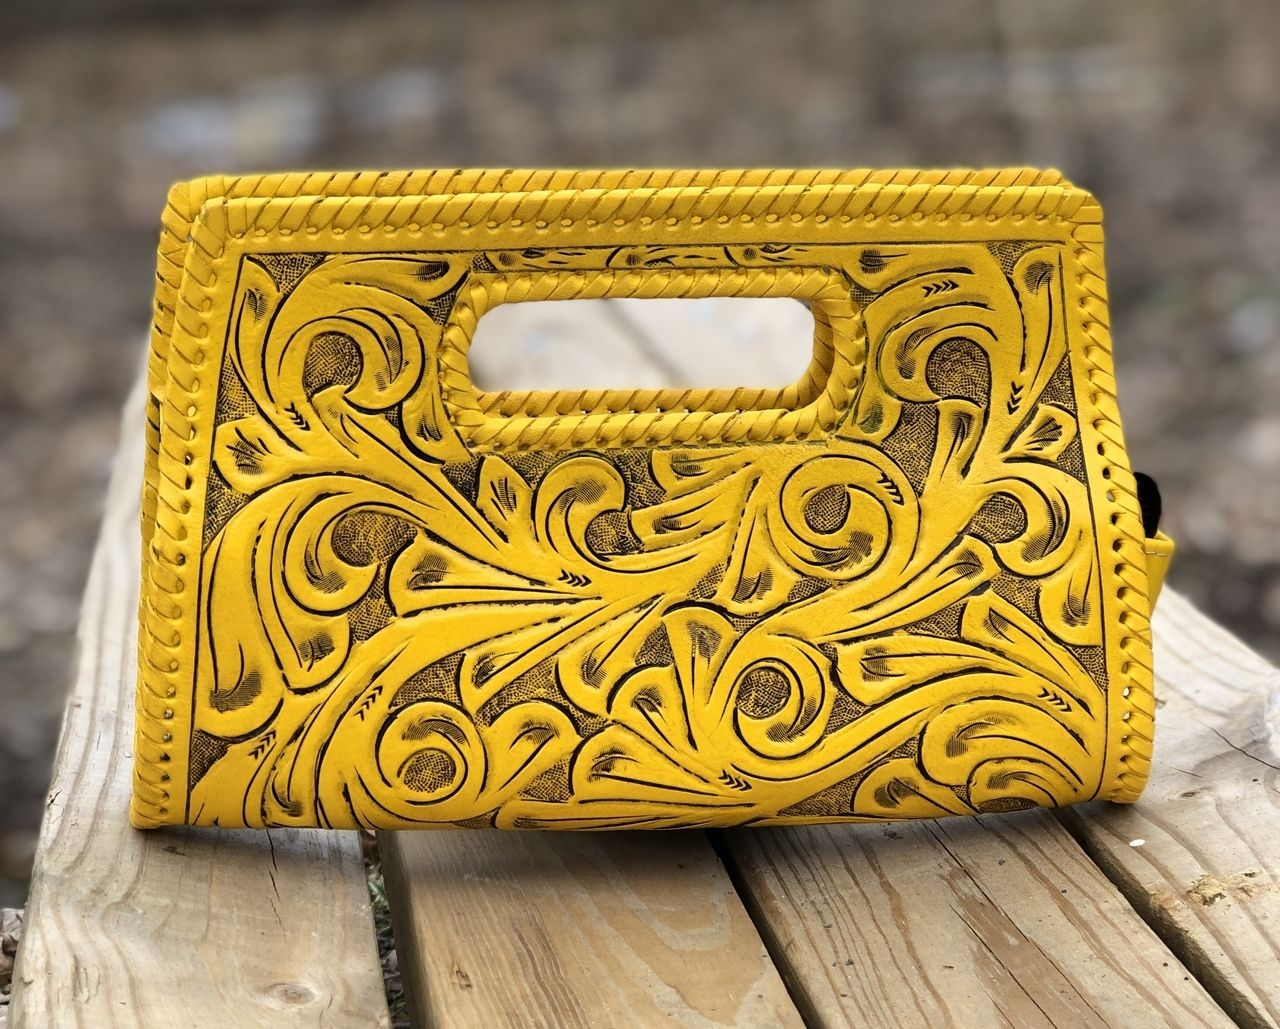 ad0835dd84 Only Designers Shop LLC - ALLE Small Envelope Hand-Tooled Leather Clutch,  $159.00 (